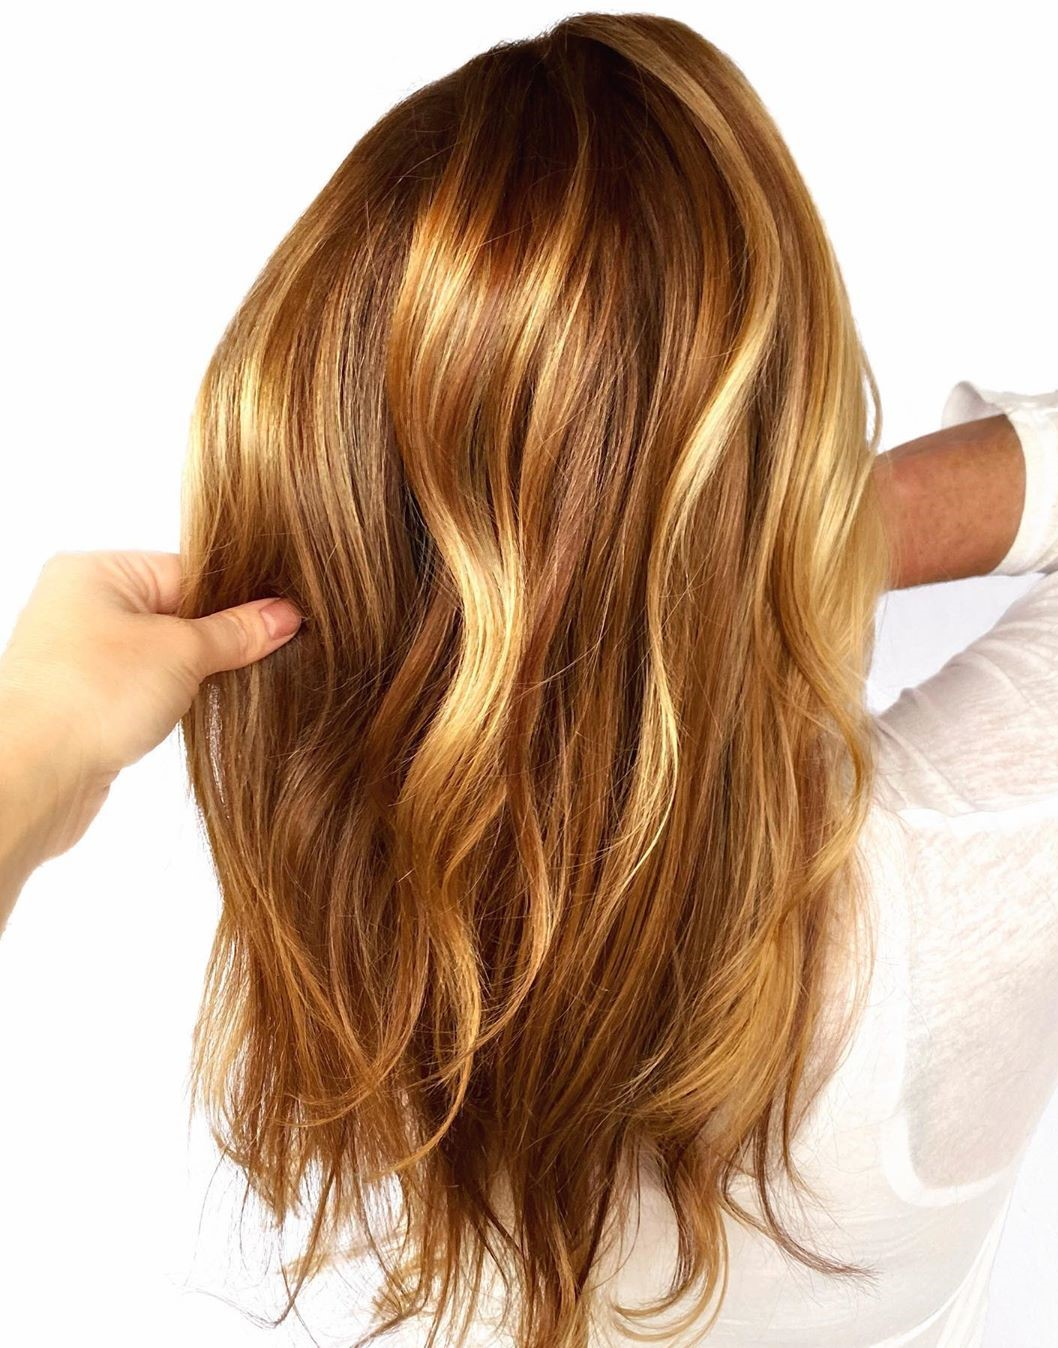 Caramel and Golden Blonde Highlights